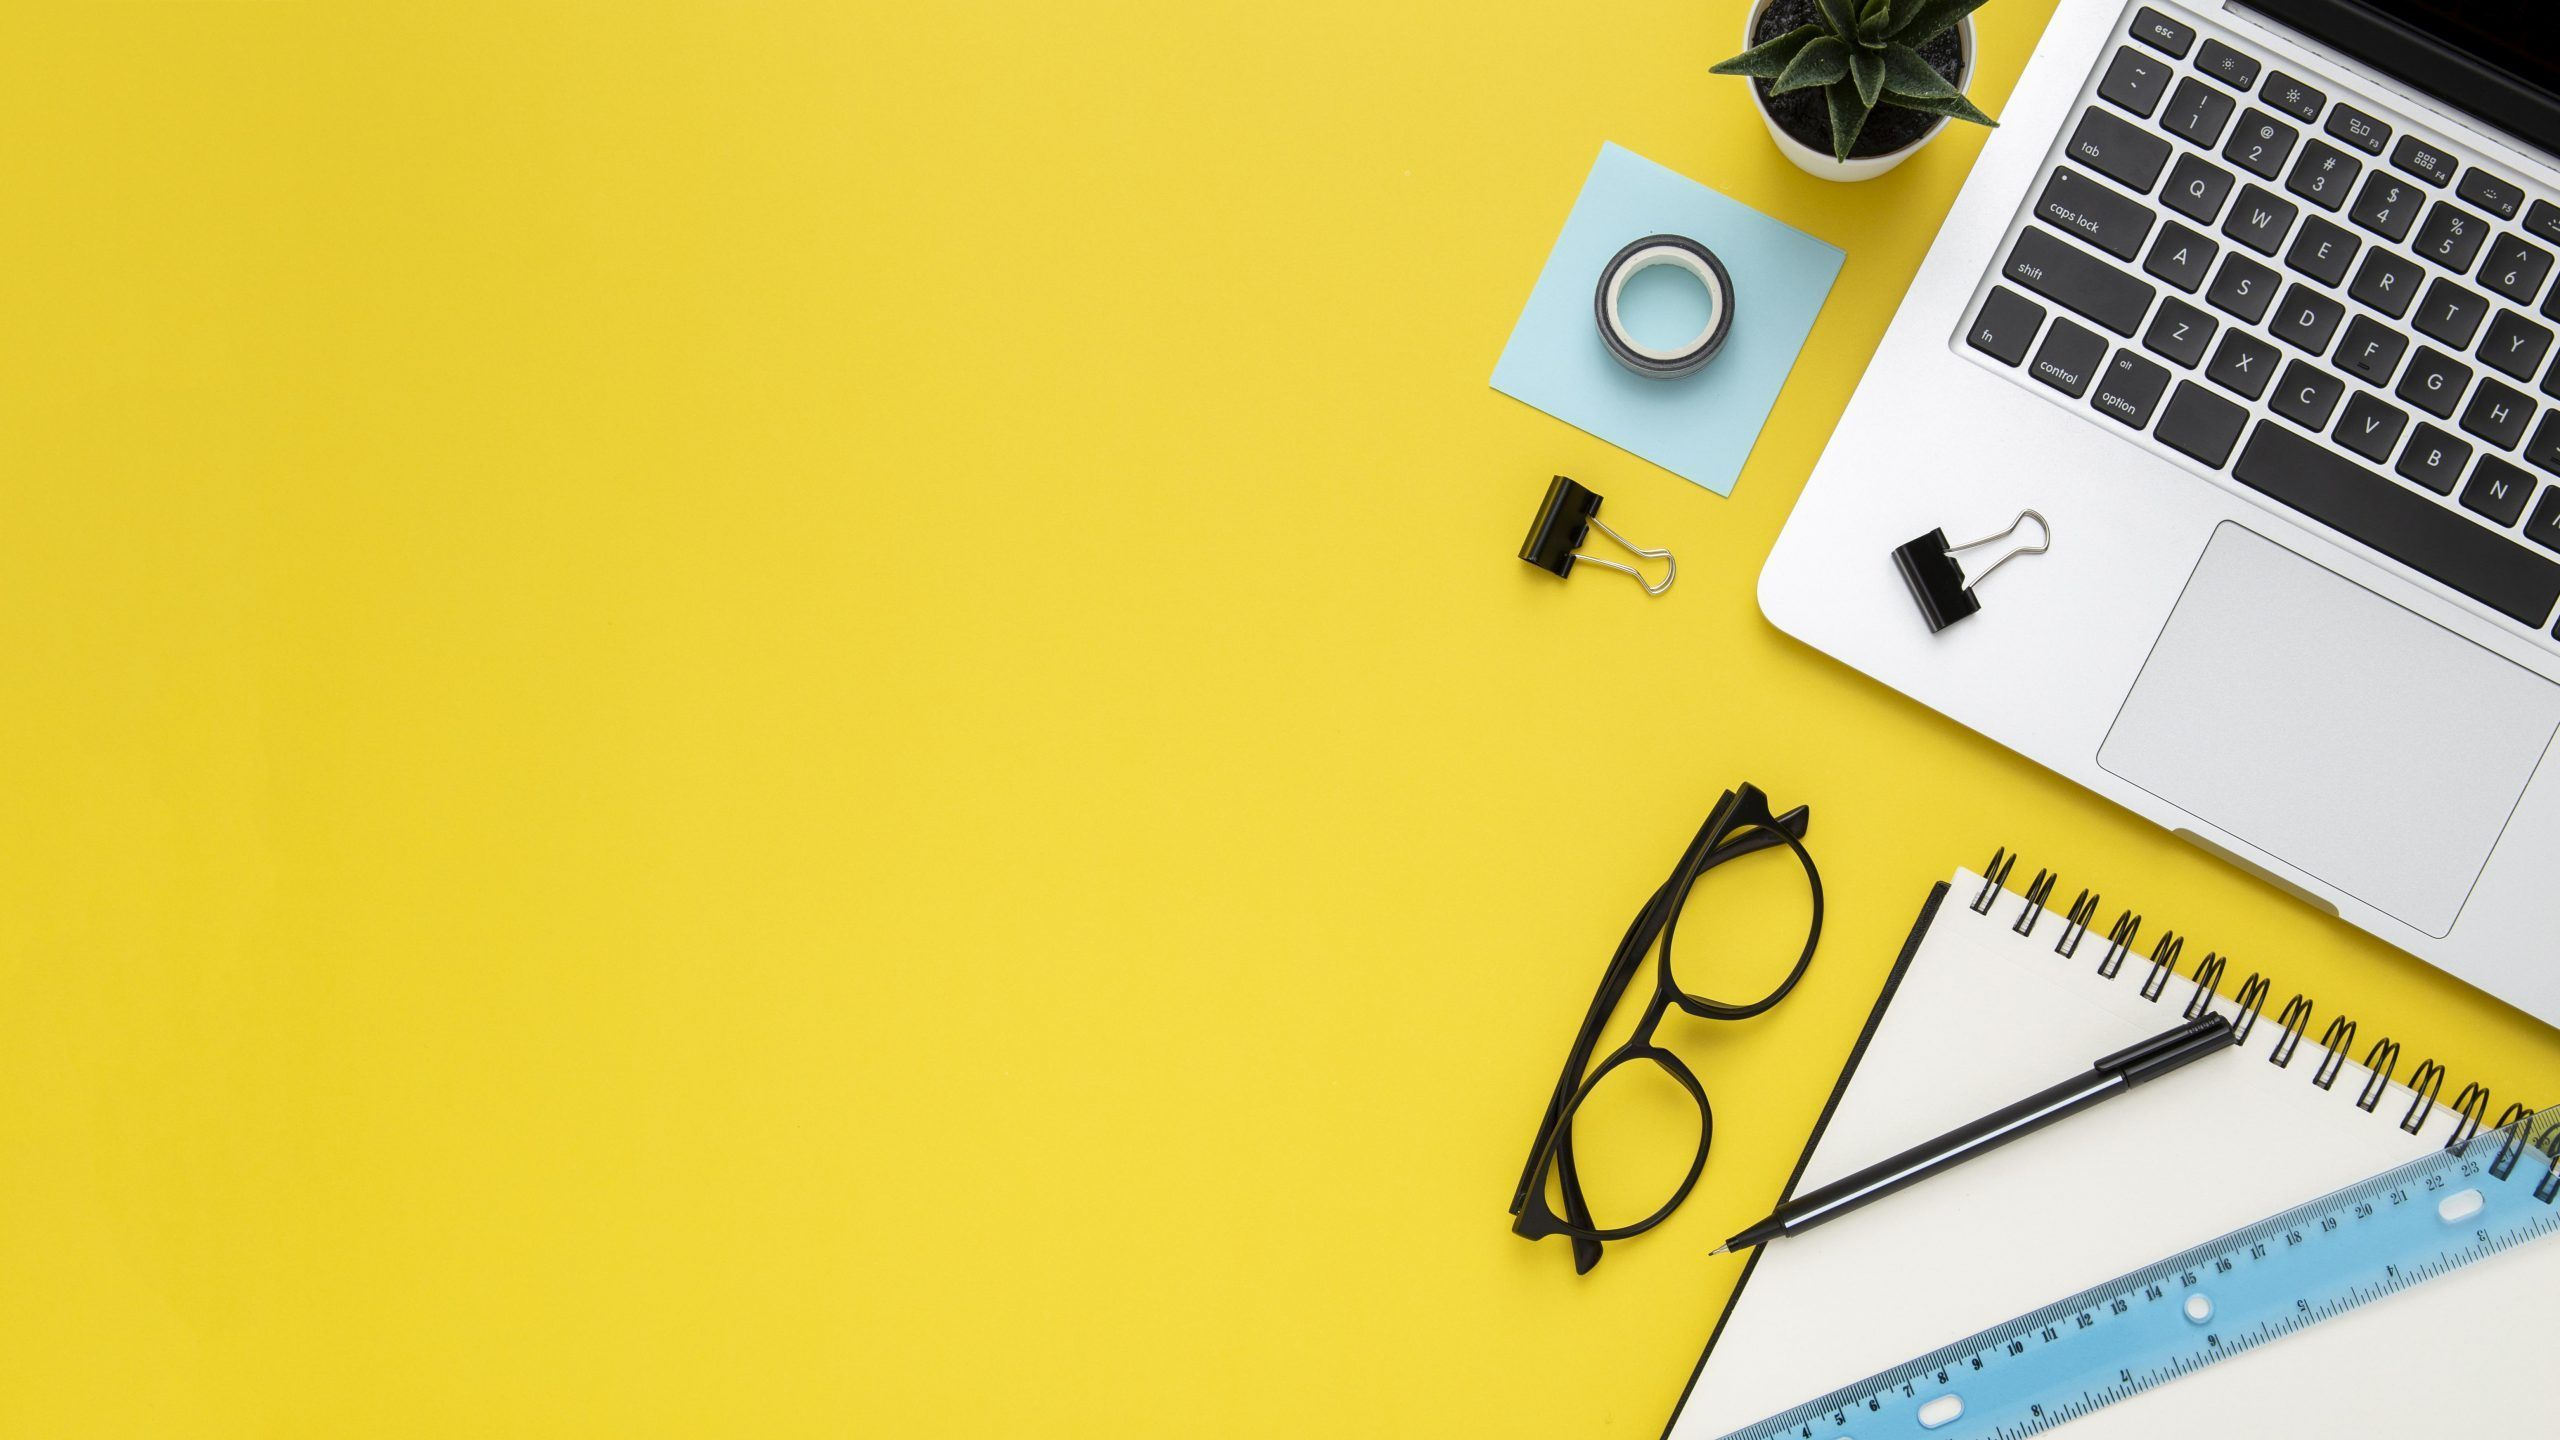 stationery arrangement yellow background with copy space scaled